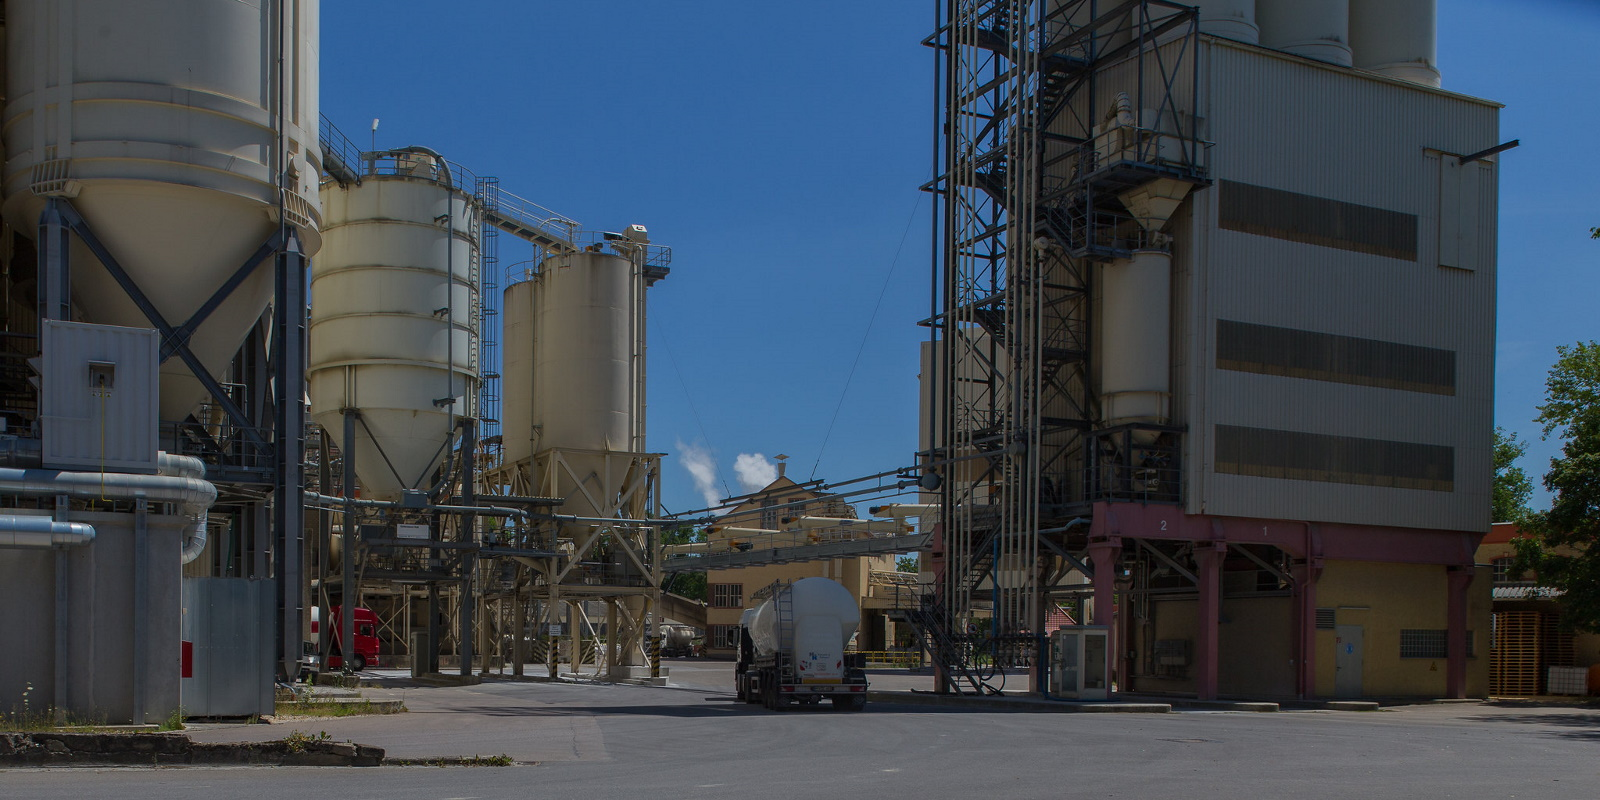 Scanclimber serving one of Germany's largest lime plants